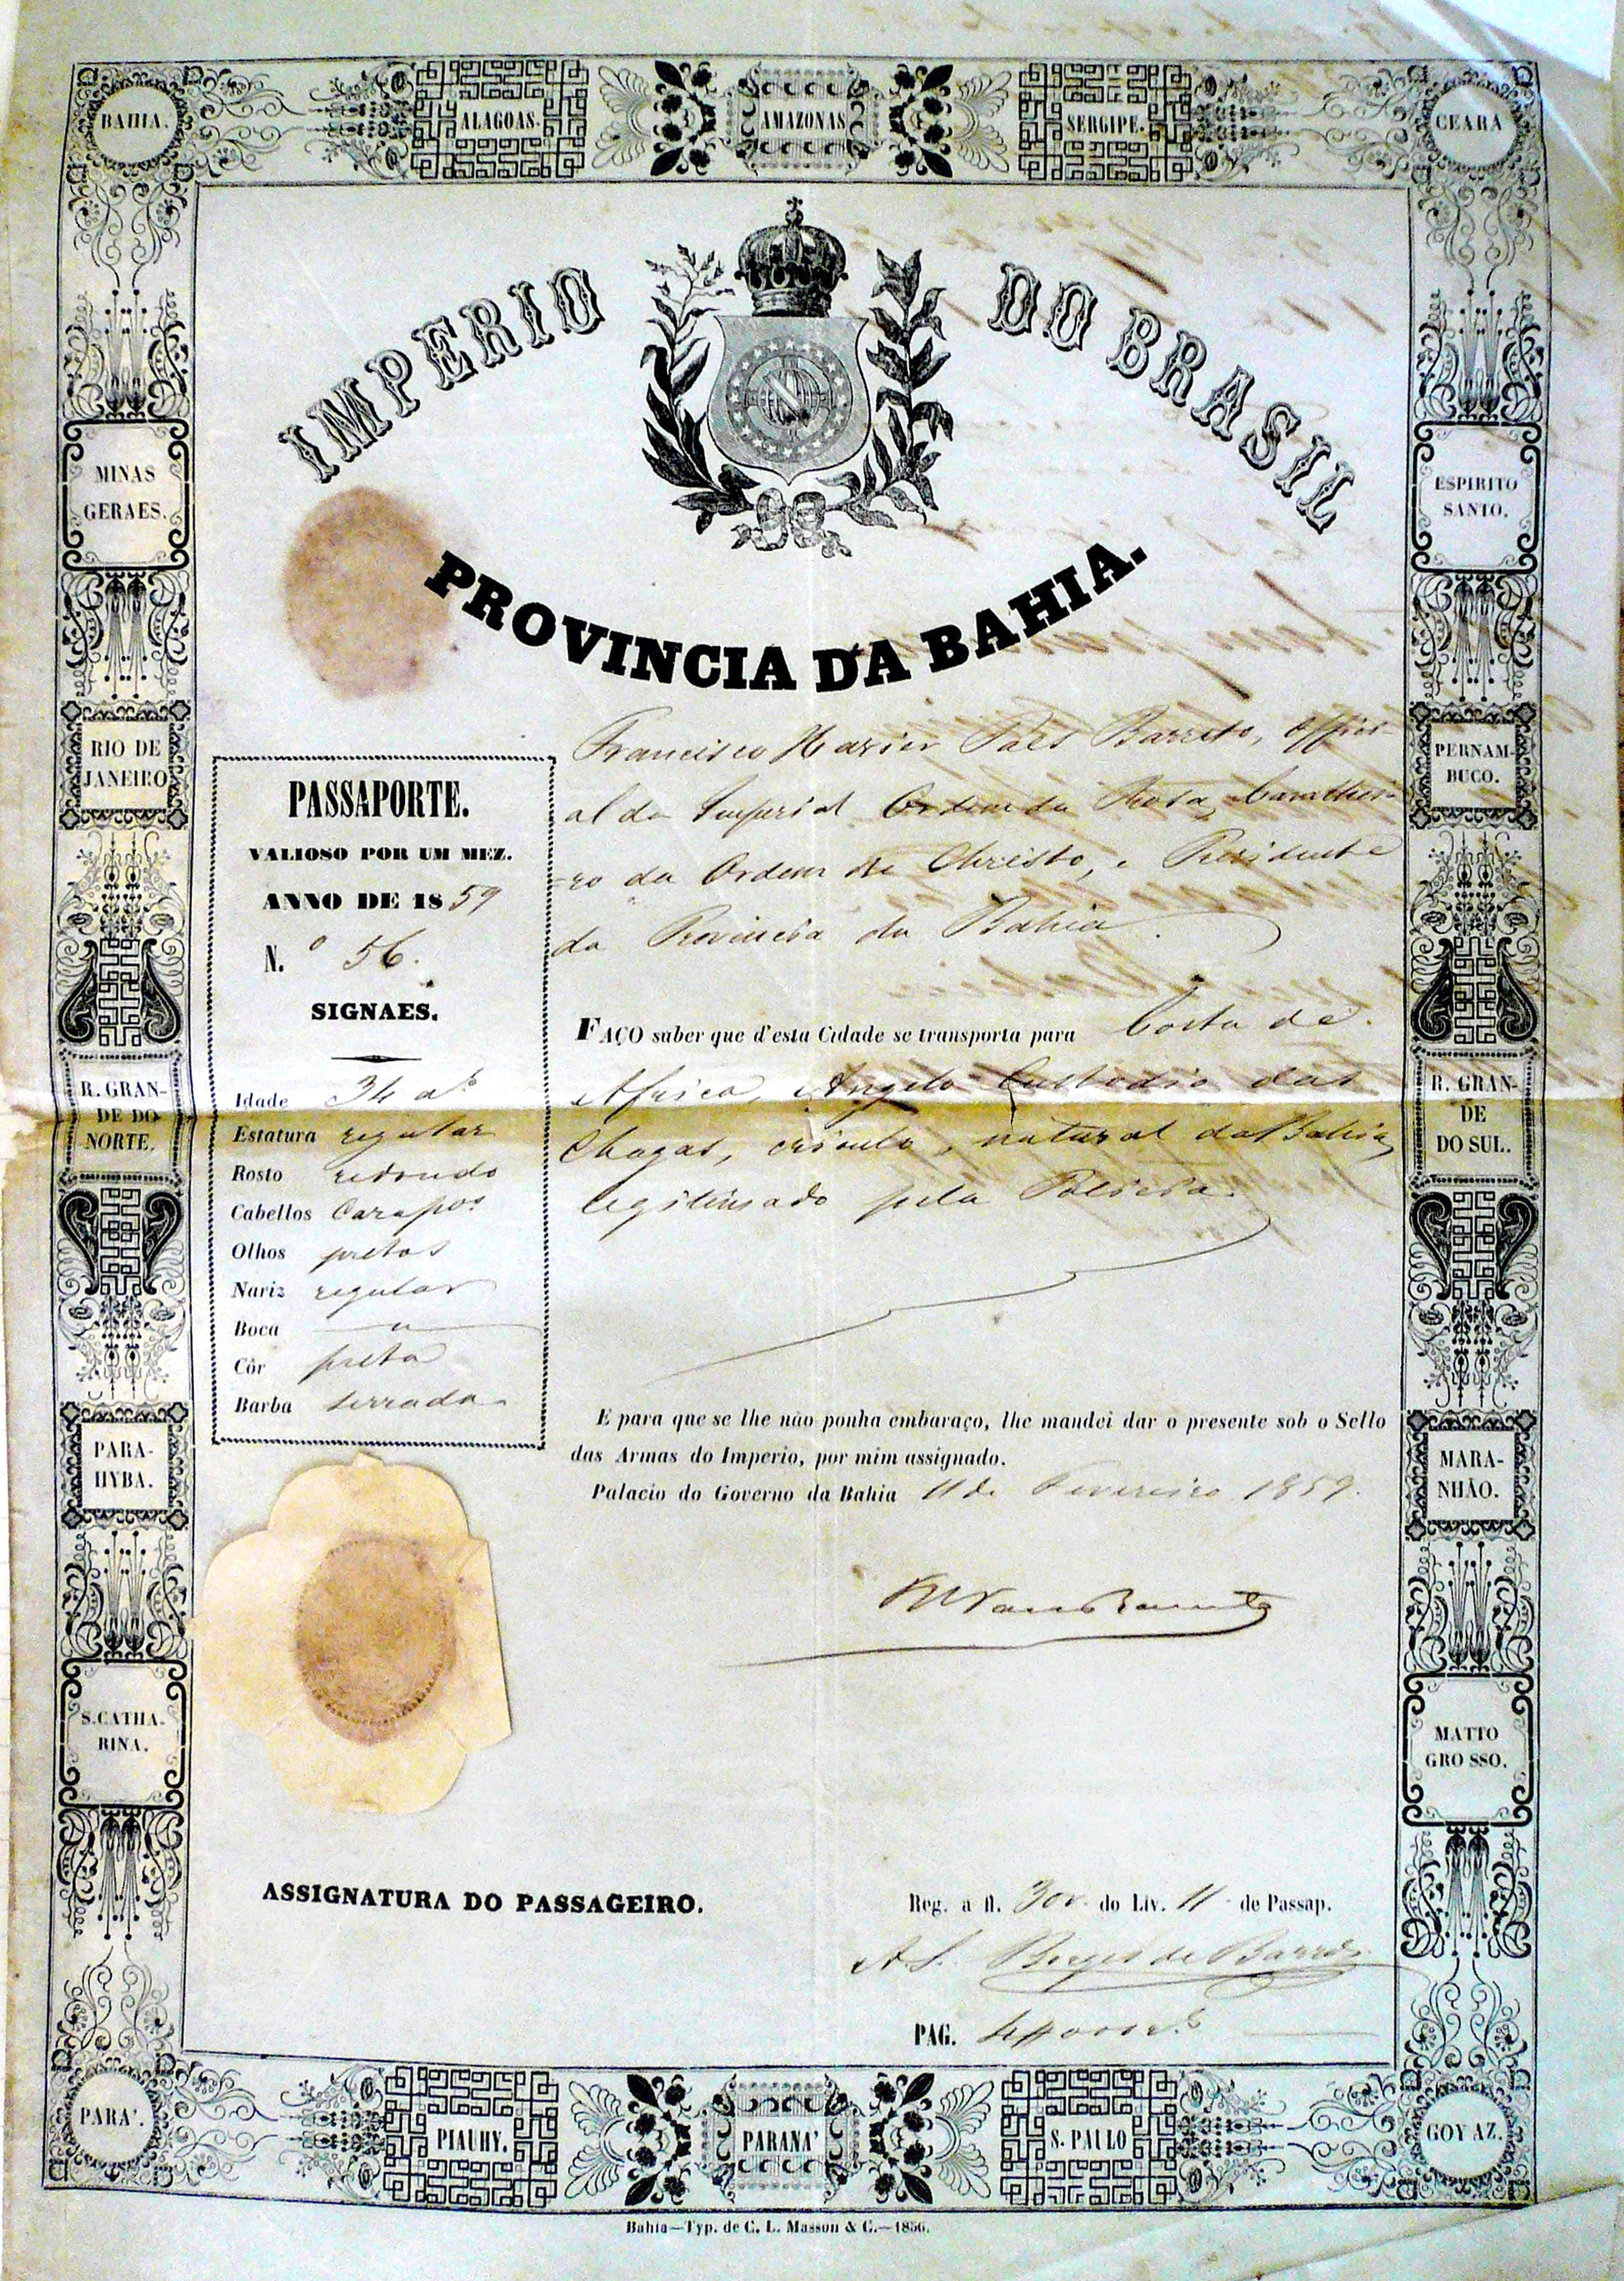 A passport issued in Brazil to Angelo Custodio das Chagas, dated 11 February 1859. Born in Bahia to a Hausa father and African mother of unknown ethnicity, in 1836, at the age of eight, Angelo Custodio was taken by his parents to Ouidah, where he still has descendants today. As an adult he worked in maritime commerce between Brazil and the Bight of Benin, which, after the end of the slave trade, was dominated by palm oil, but also included products such as country cloths, kola nuts, black soap and straw mats. These products are still used today in Brazil, in the ritual context. Source: Arquivo Publico da Bahia, photo taken by Lisa Earl Castillo